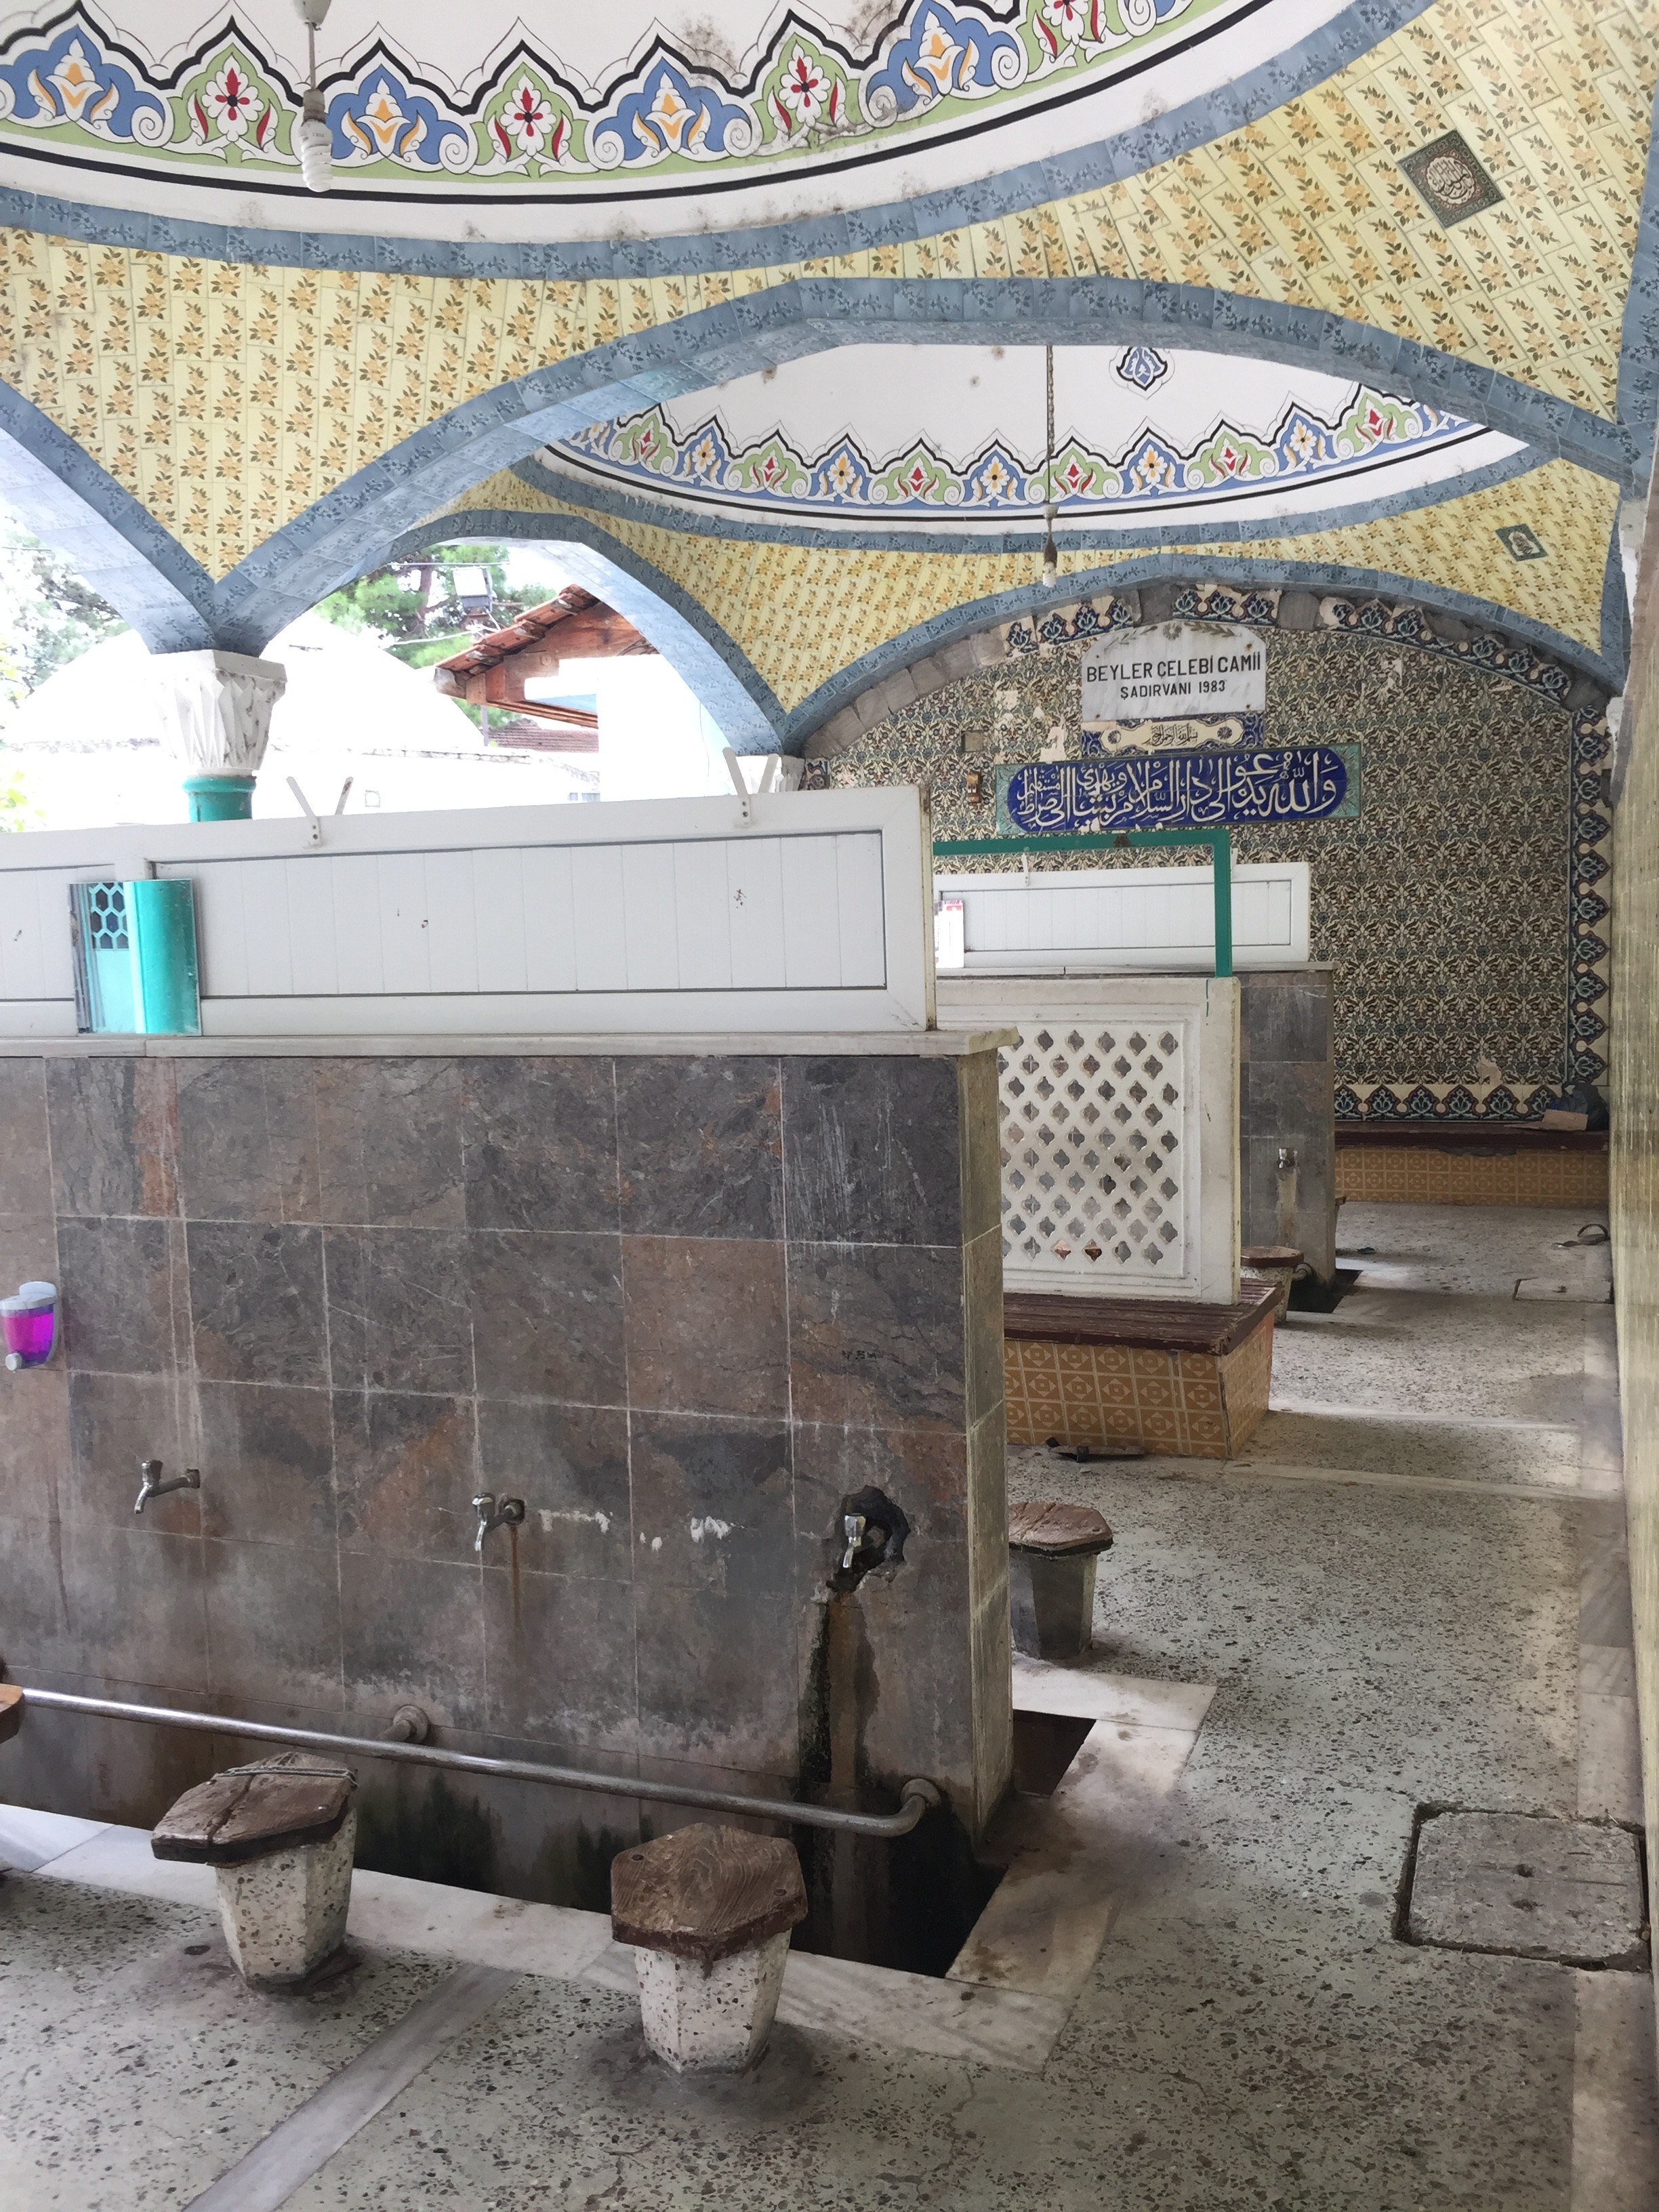 Mosque 'ablutions'